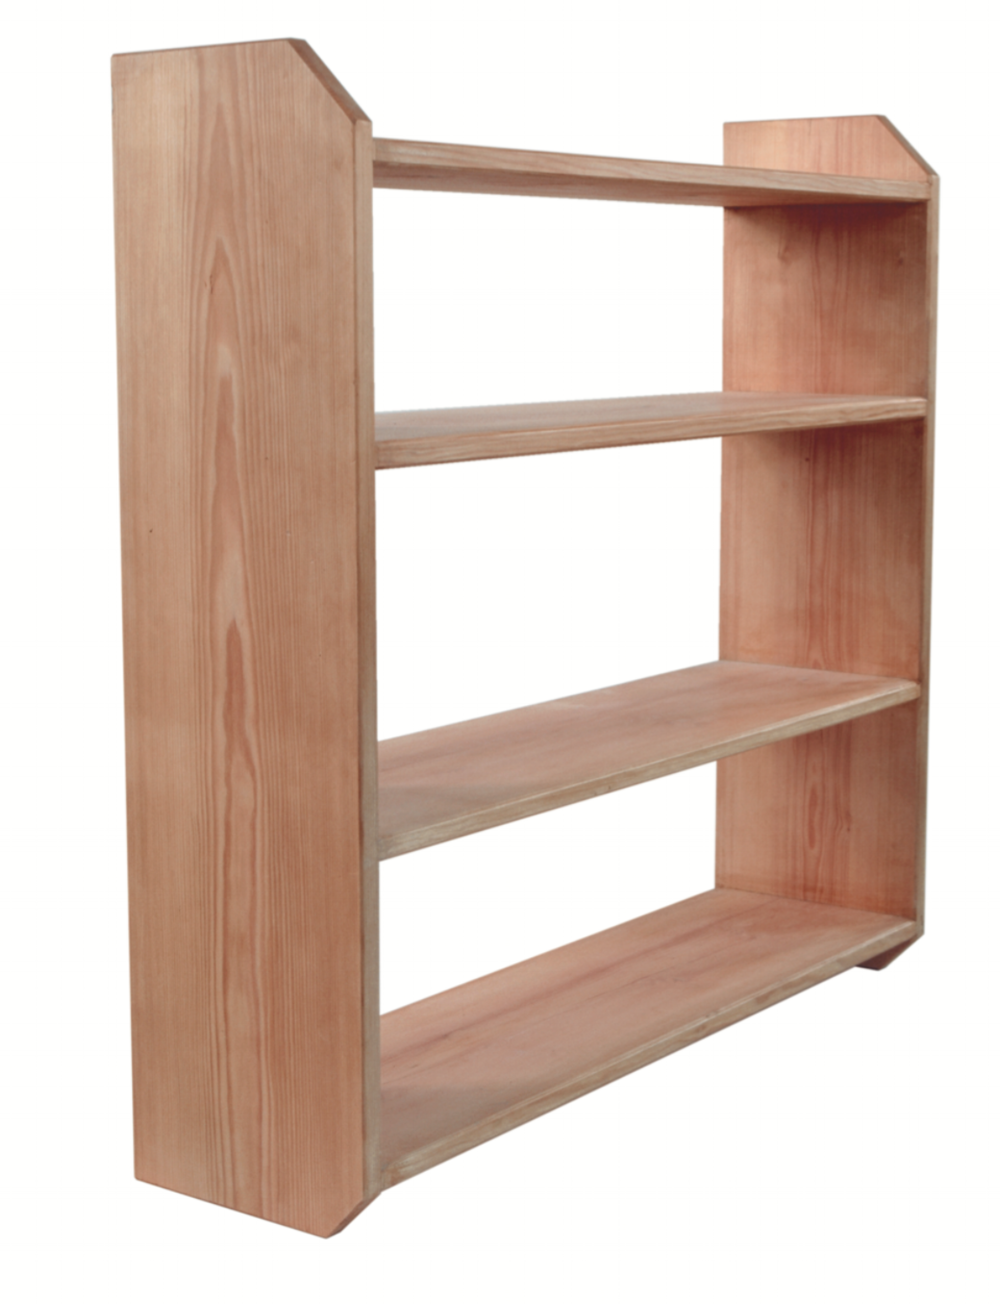 Shelves made with sliding dovetails.